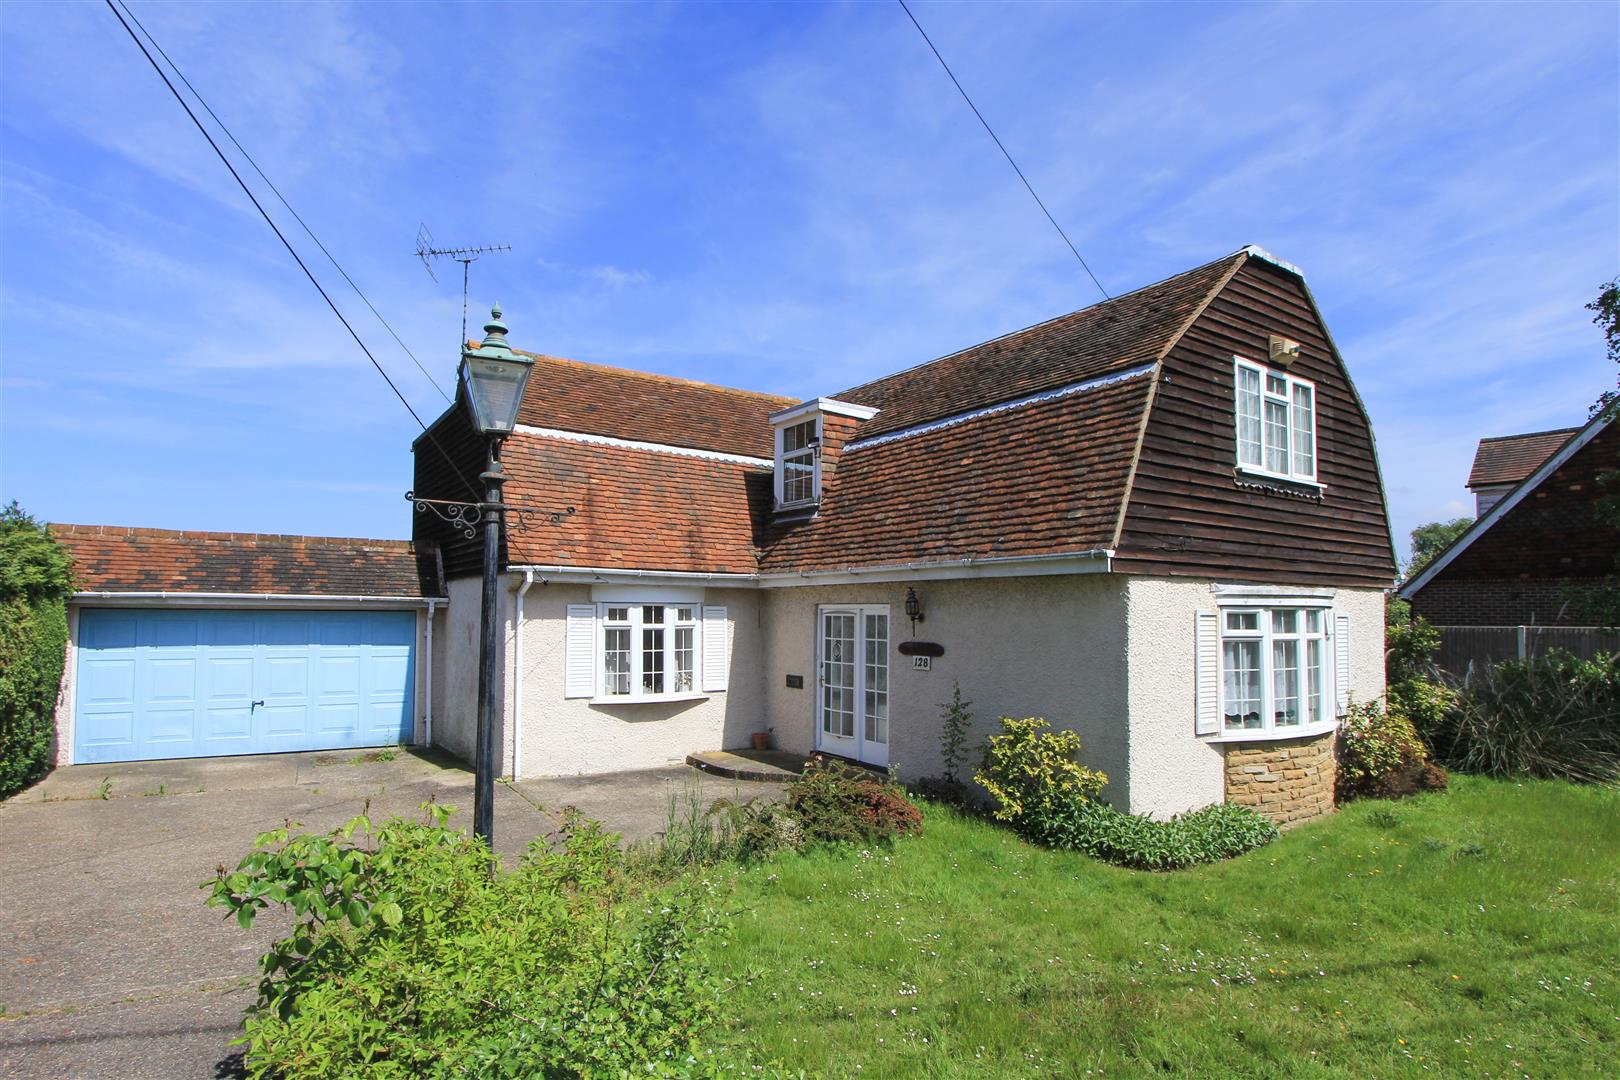 3 Bedrooms Detached House for sale in Blean Common, Blean, Canterbury